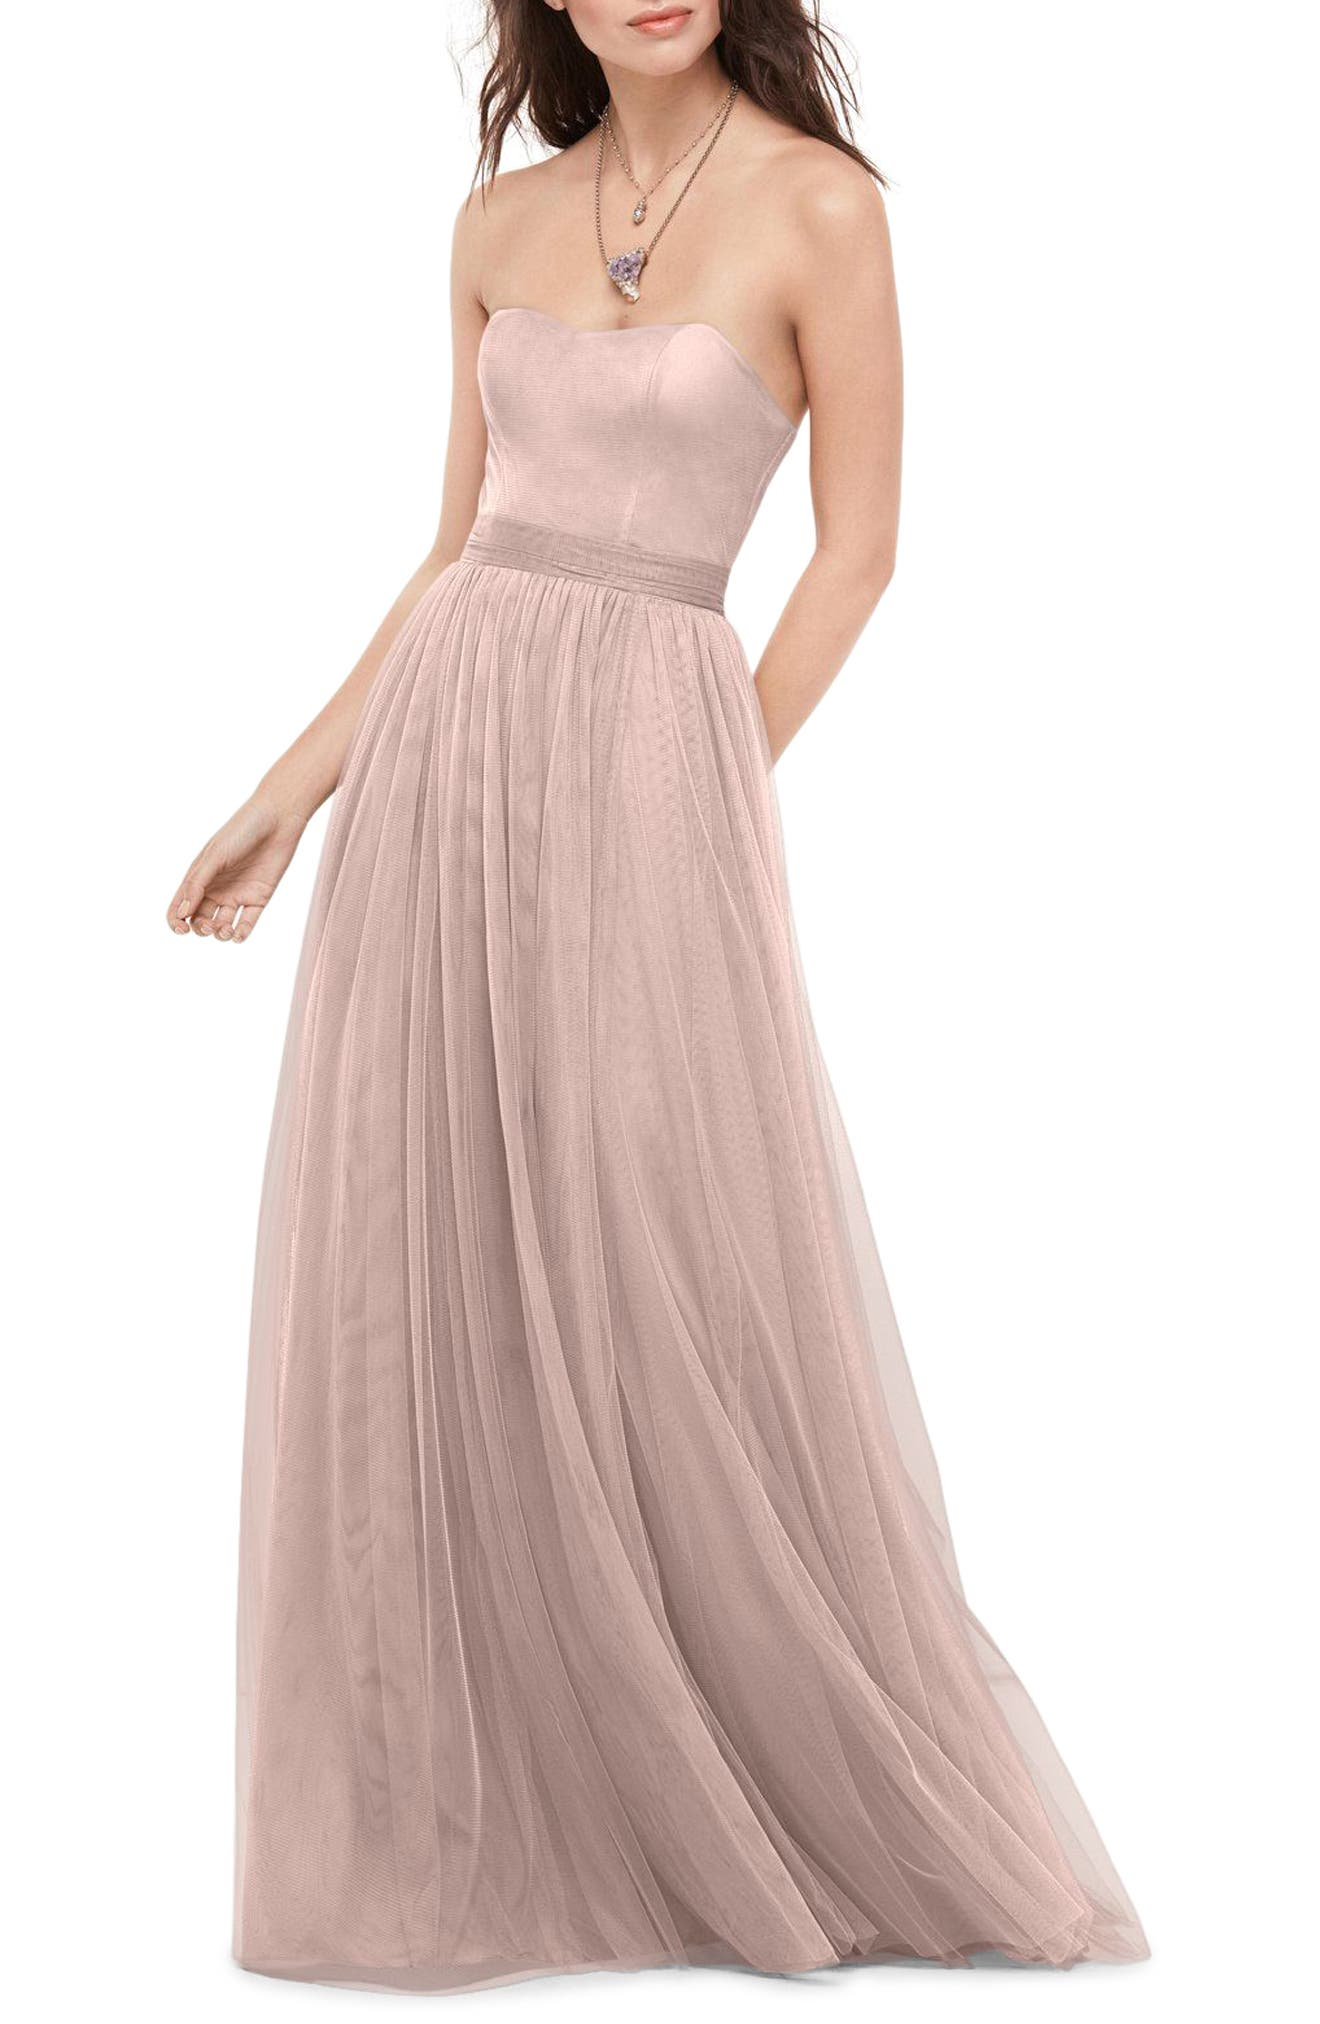 Bobbinet Strapless Gown,                             Main thumbnail 3, color,